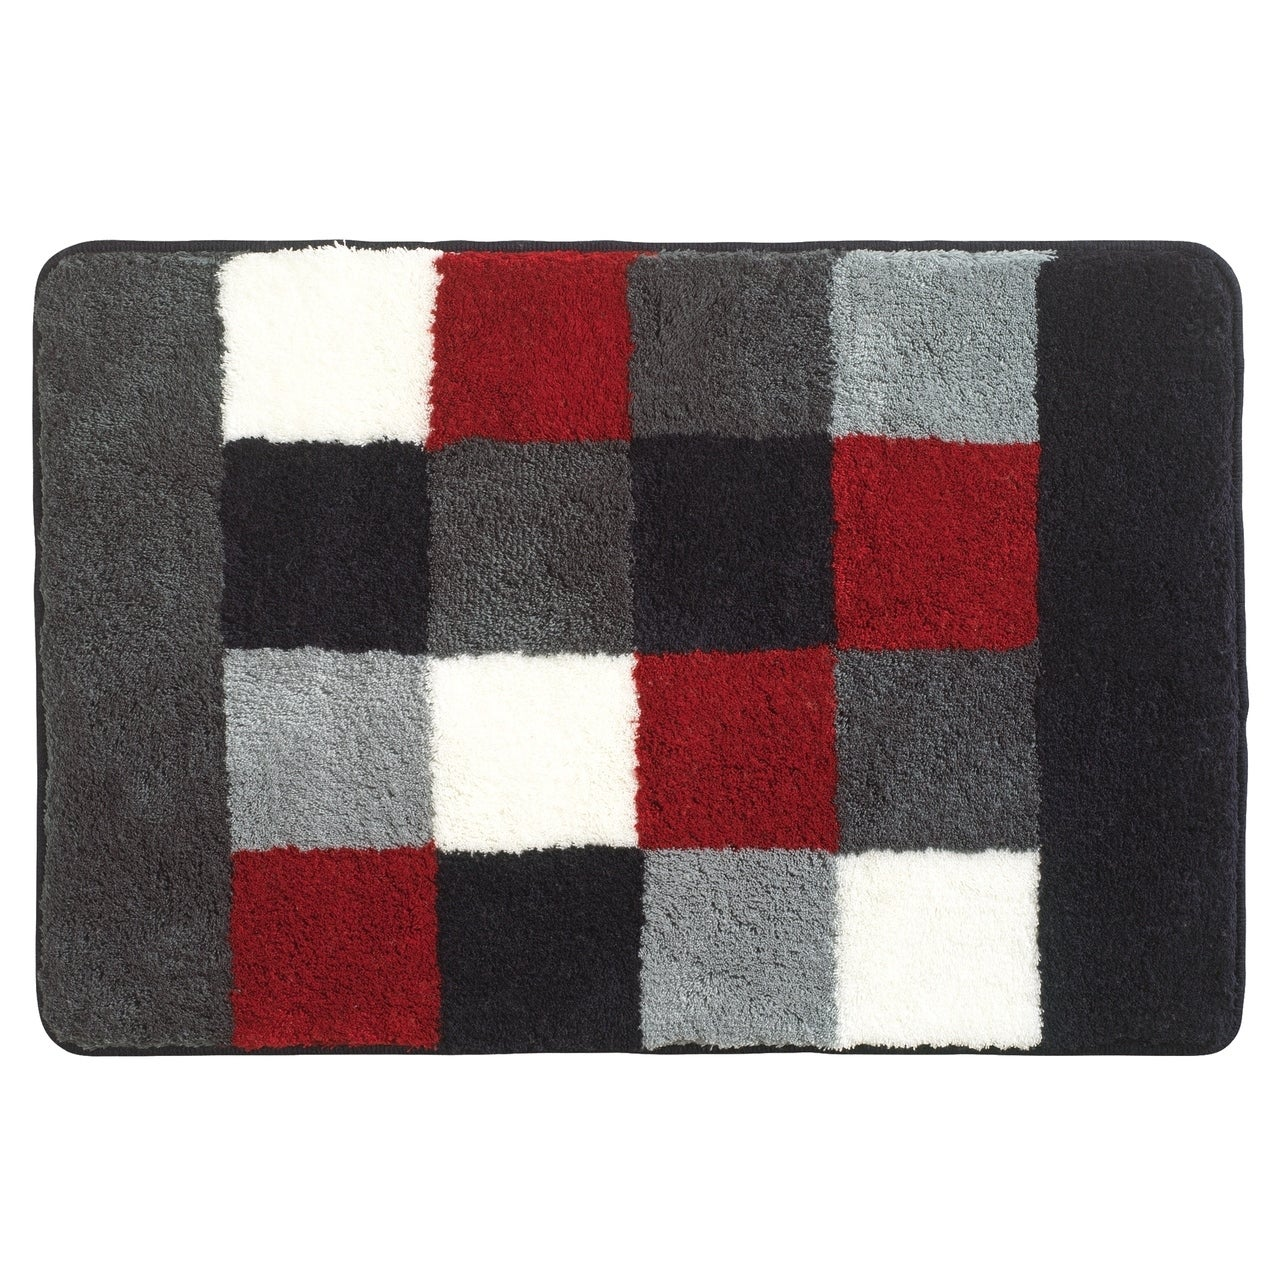 brown and gray bathroom rugs